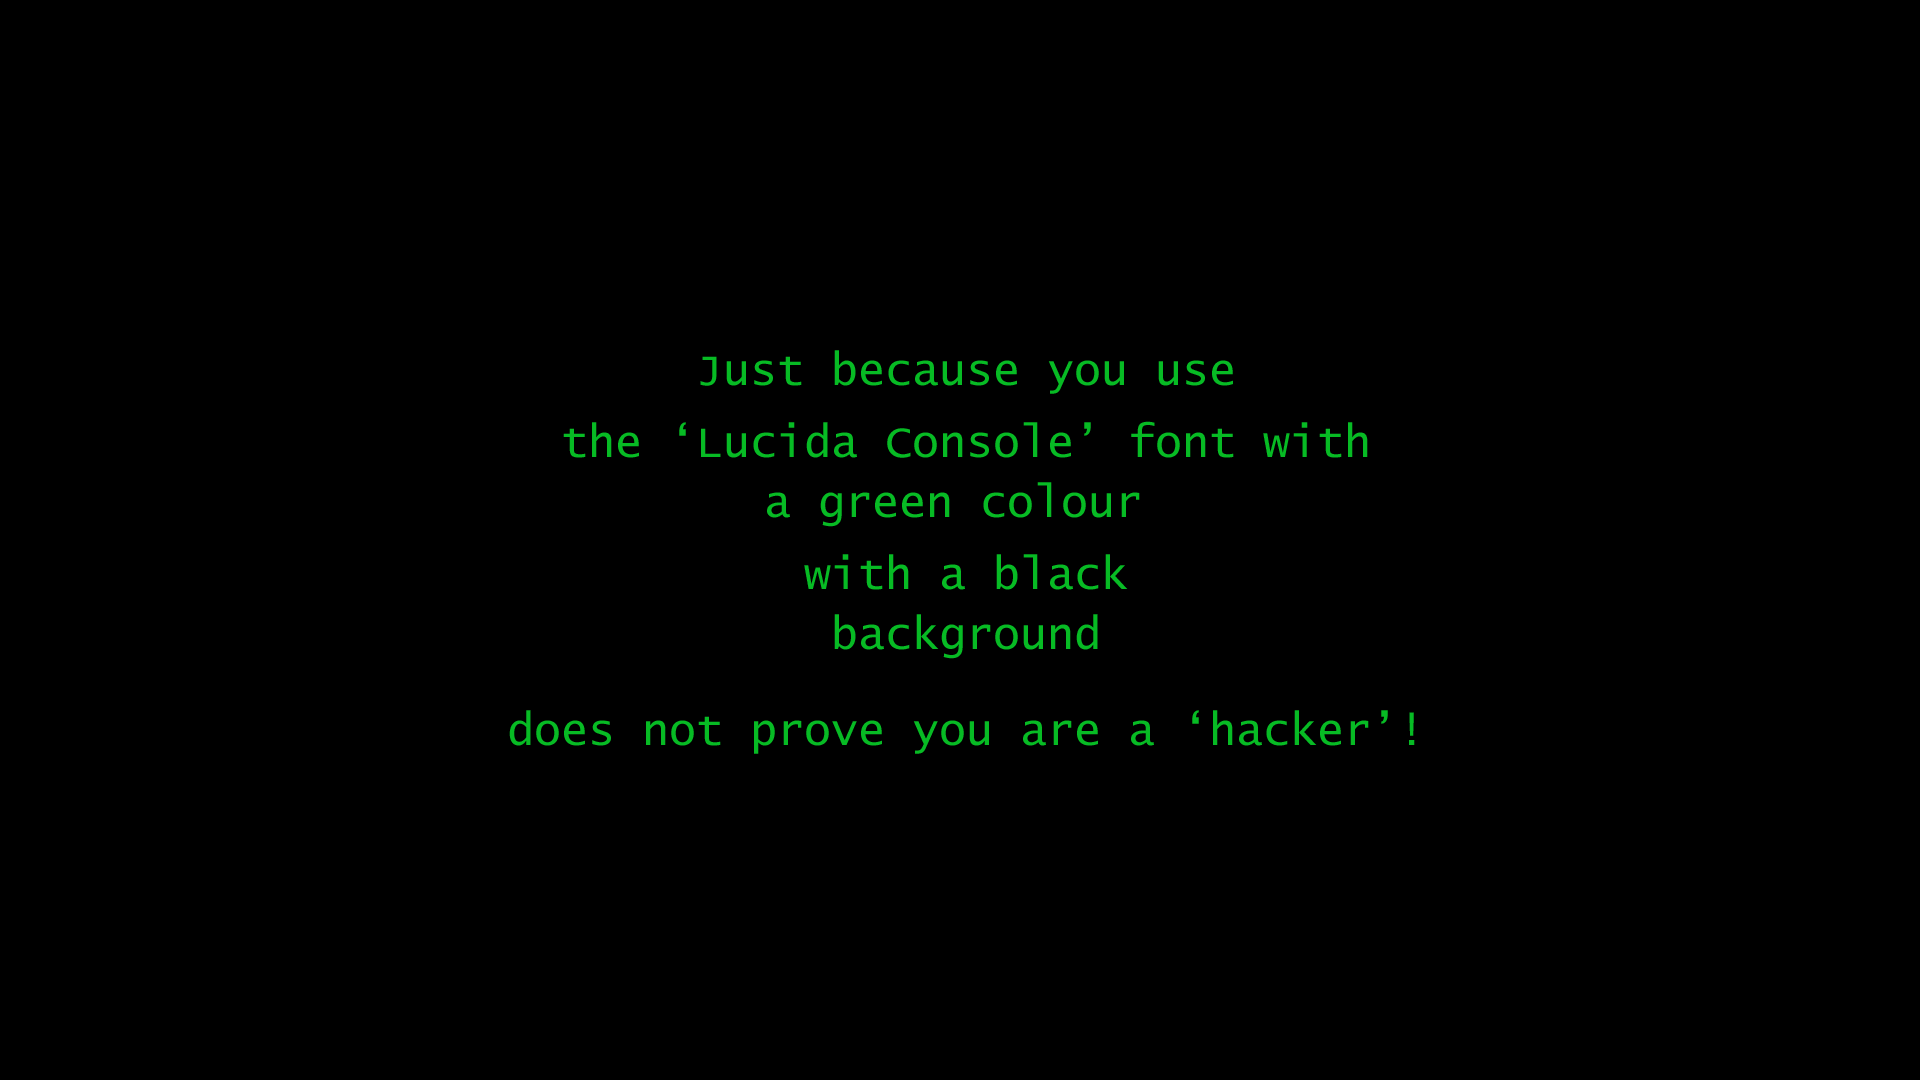 Hacker Black Green computer wallpaper background 1920x1080